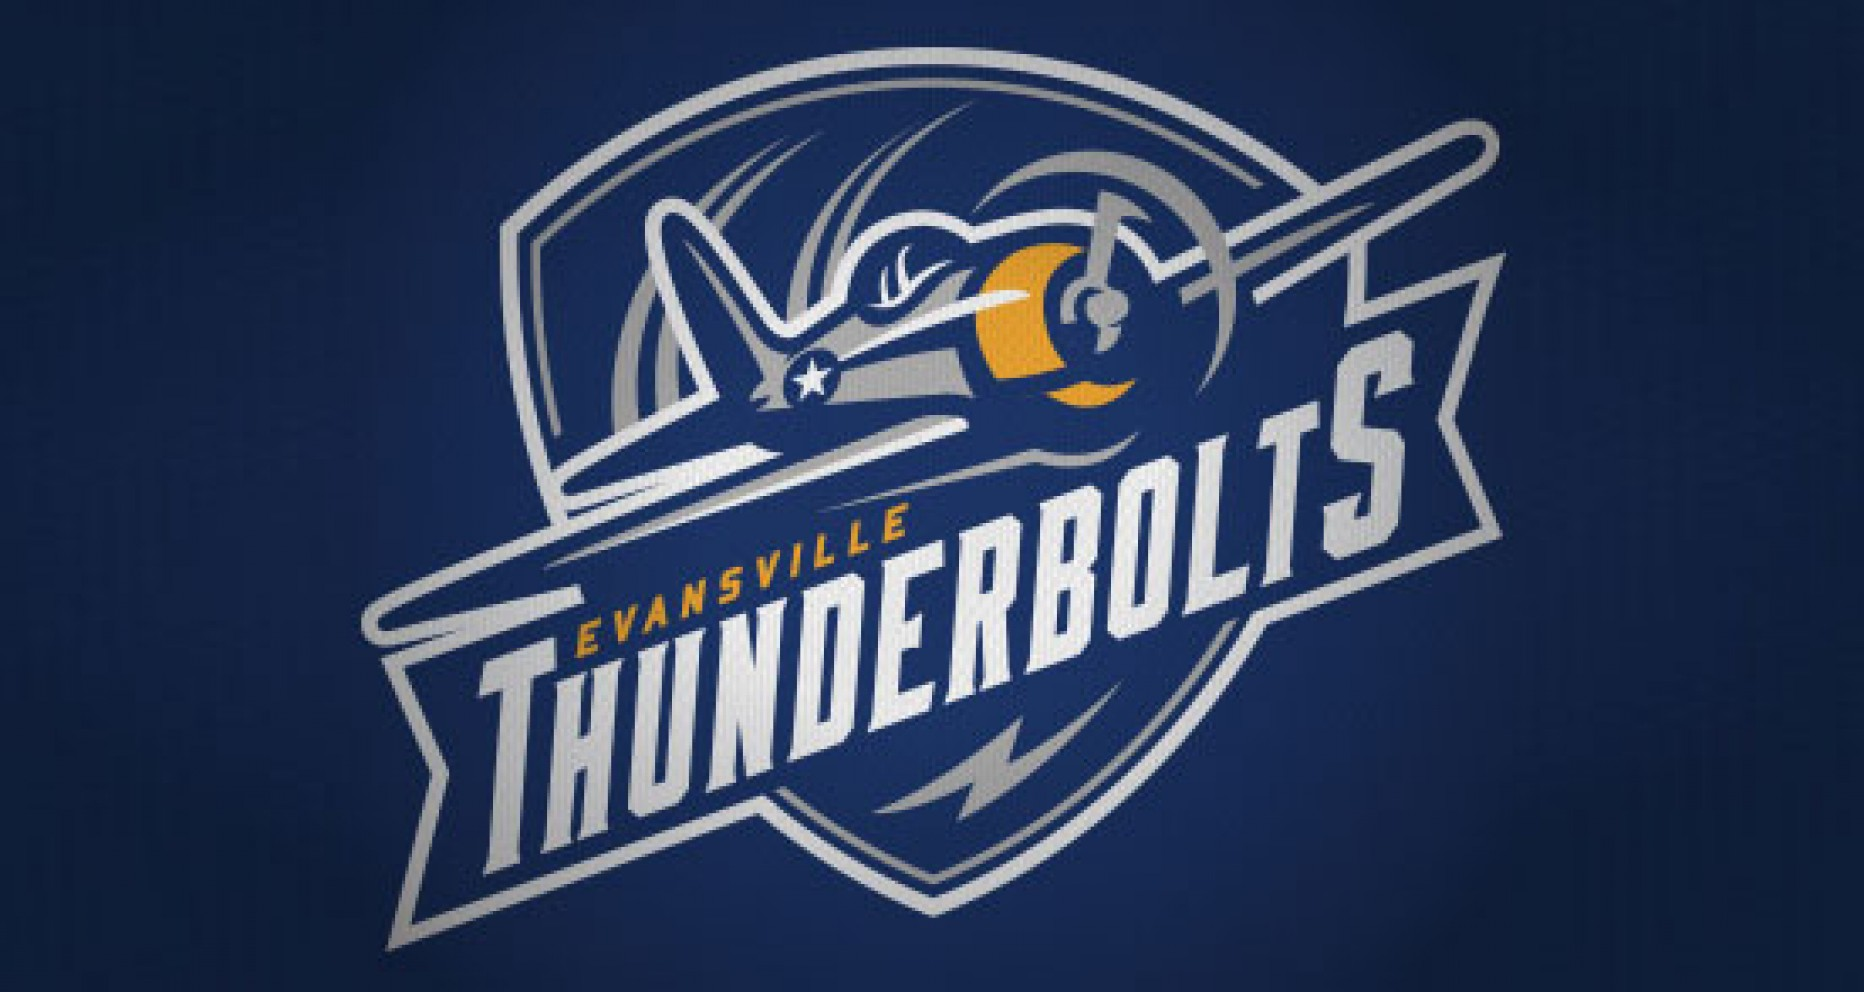 Evansville Jr. Thunderbolts